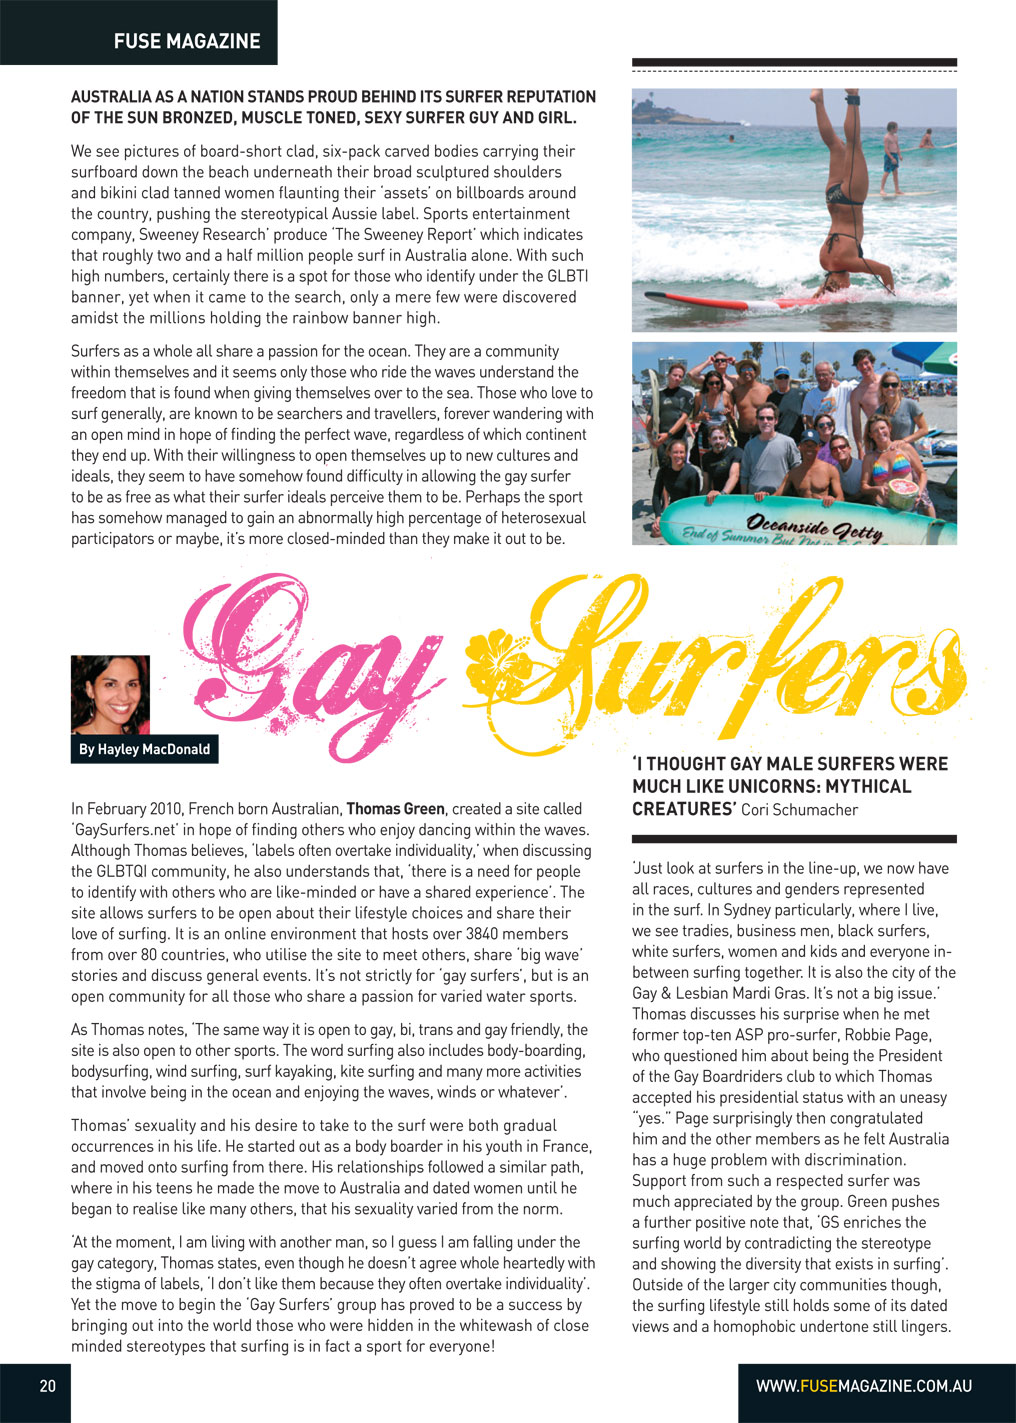 Gay Surfers found on aussie shores, by FUSE mag